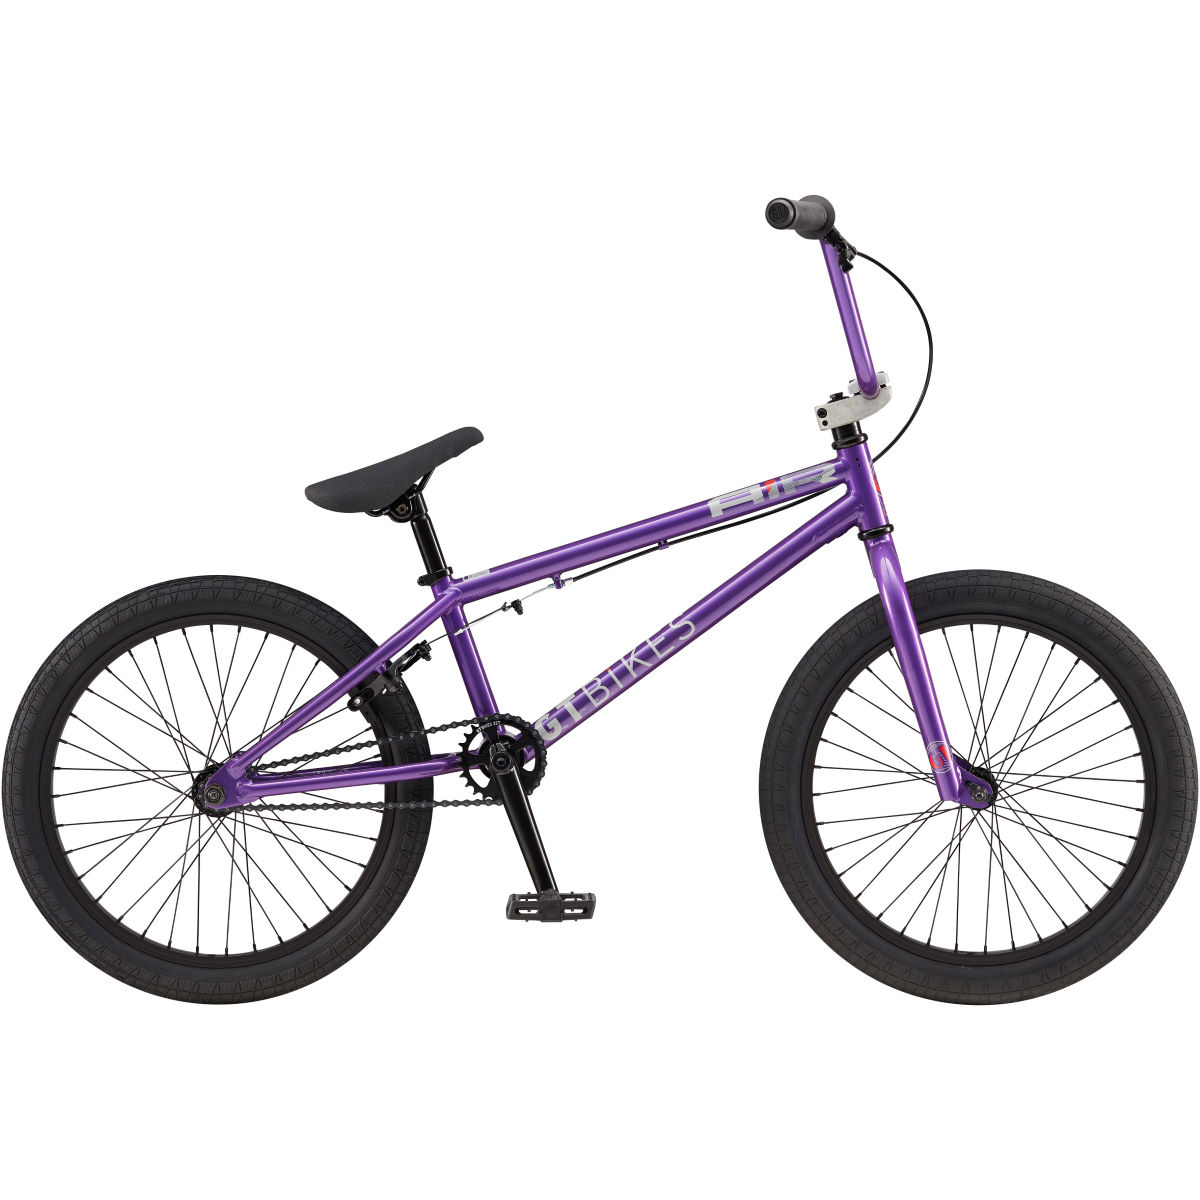 GT Air (2019) Bike - Bicicletas de BMX Freestyle